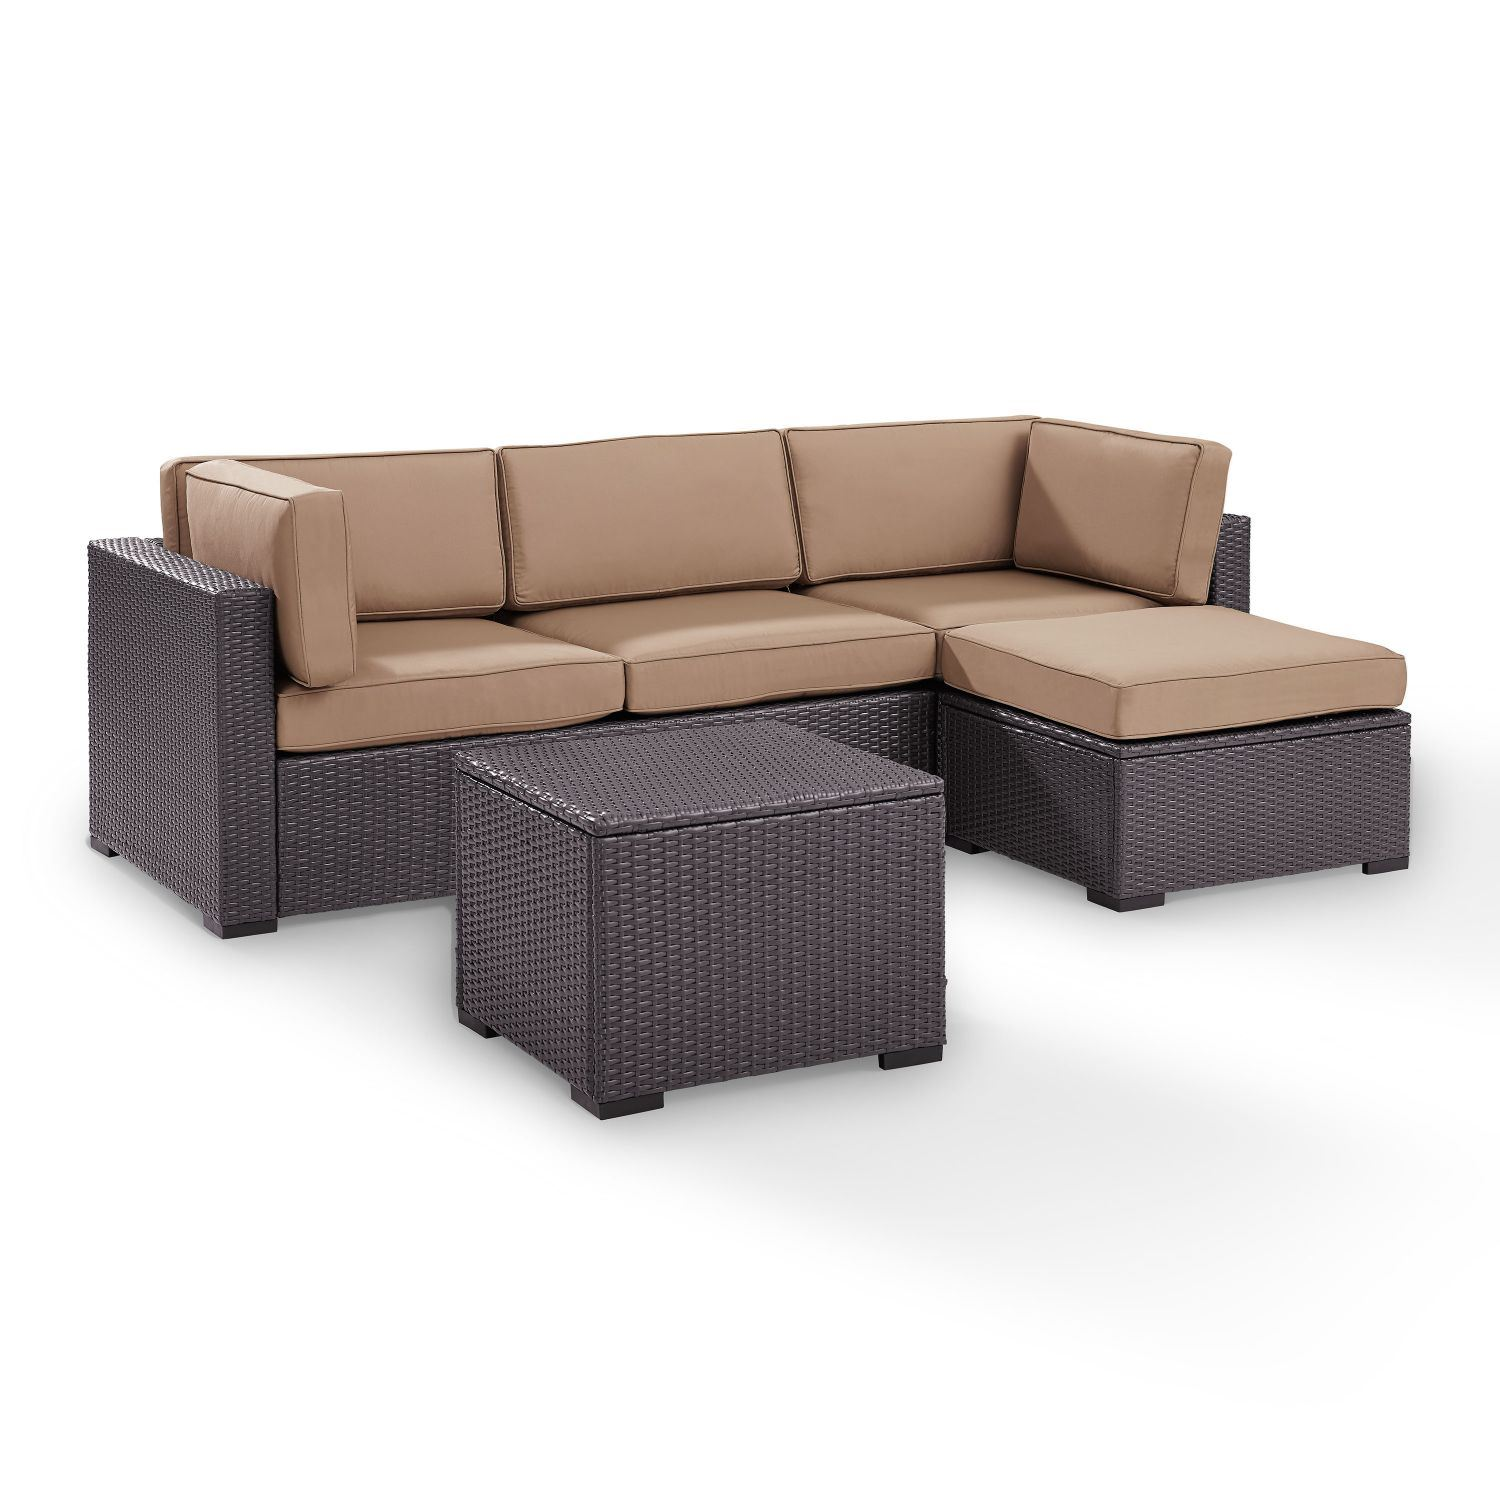 Picture of BISCAYNE SOFA CHAISE MOCHA